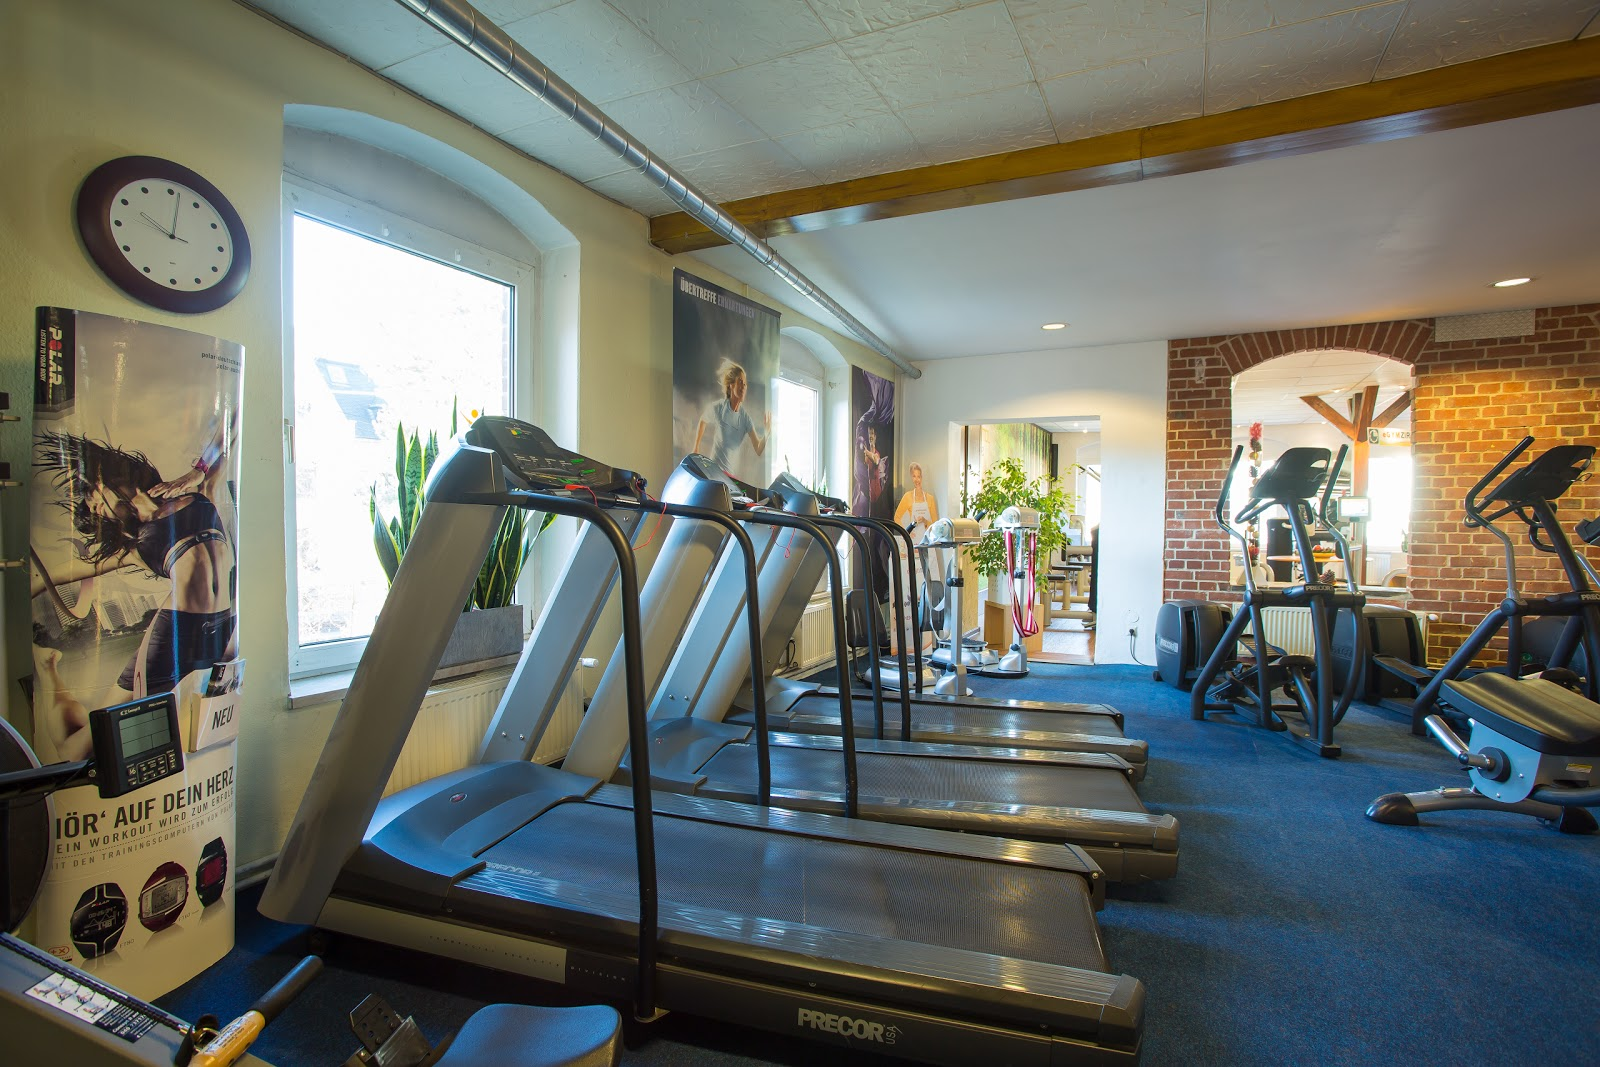 apollo Vital * Sport- & Therapiezentrum / Fitnessclub - photo